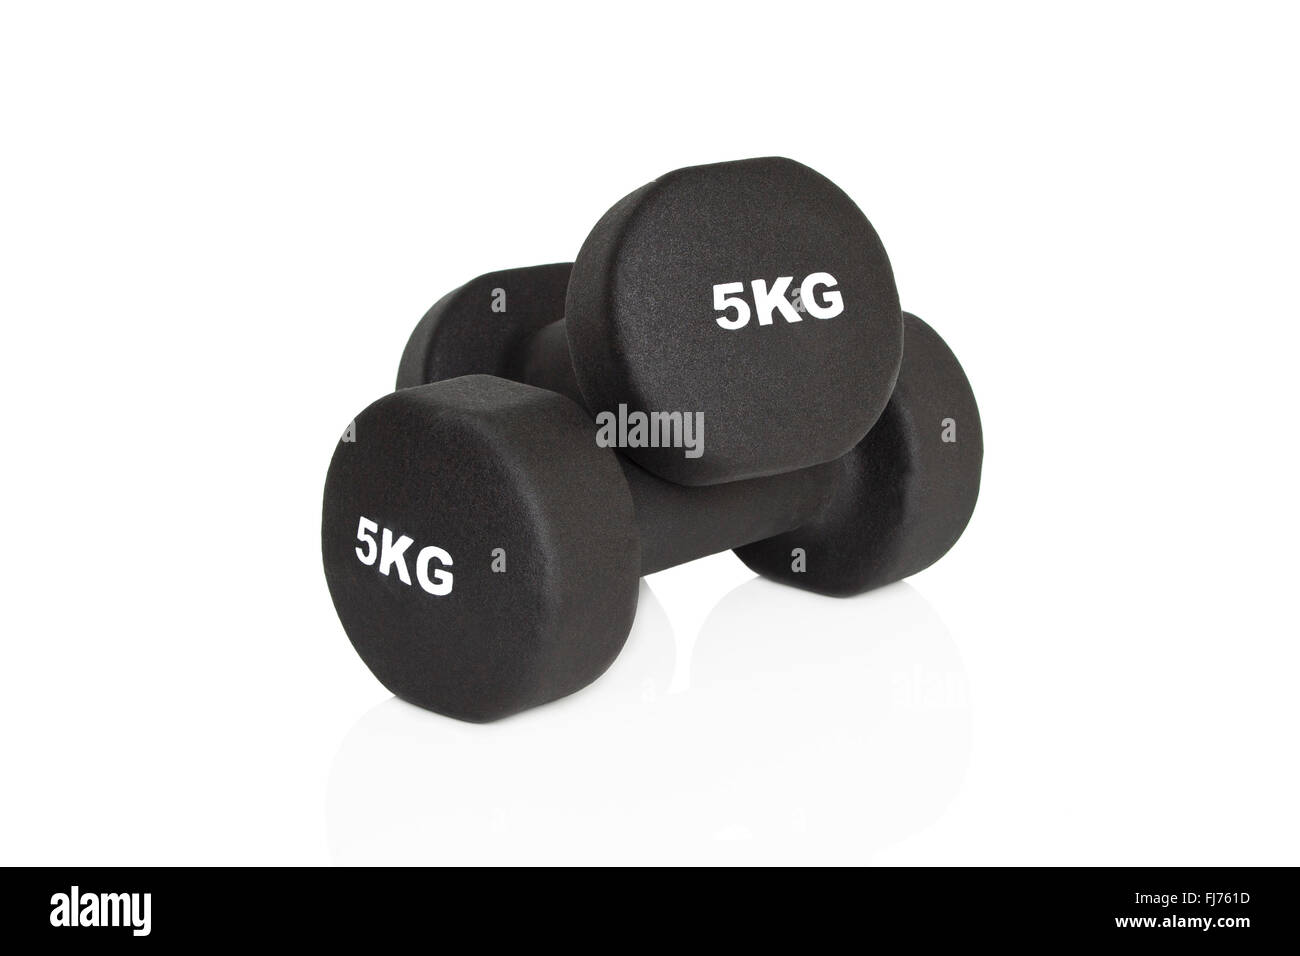 Black 5kg dumbbells isolated on white background. Weights for a fitness training. - Stock Image